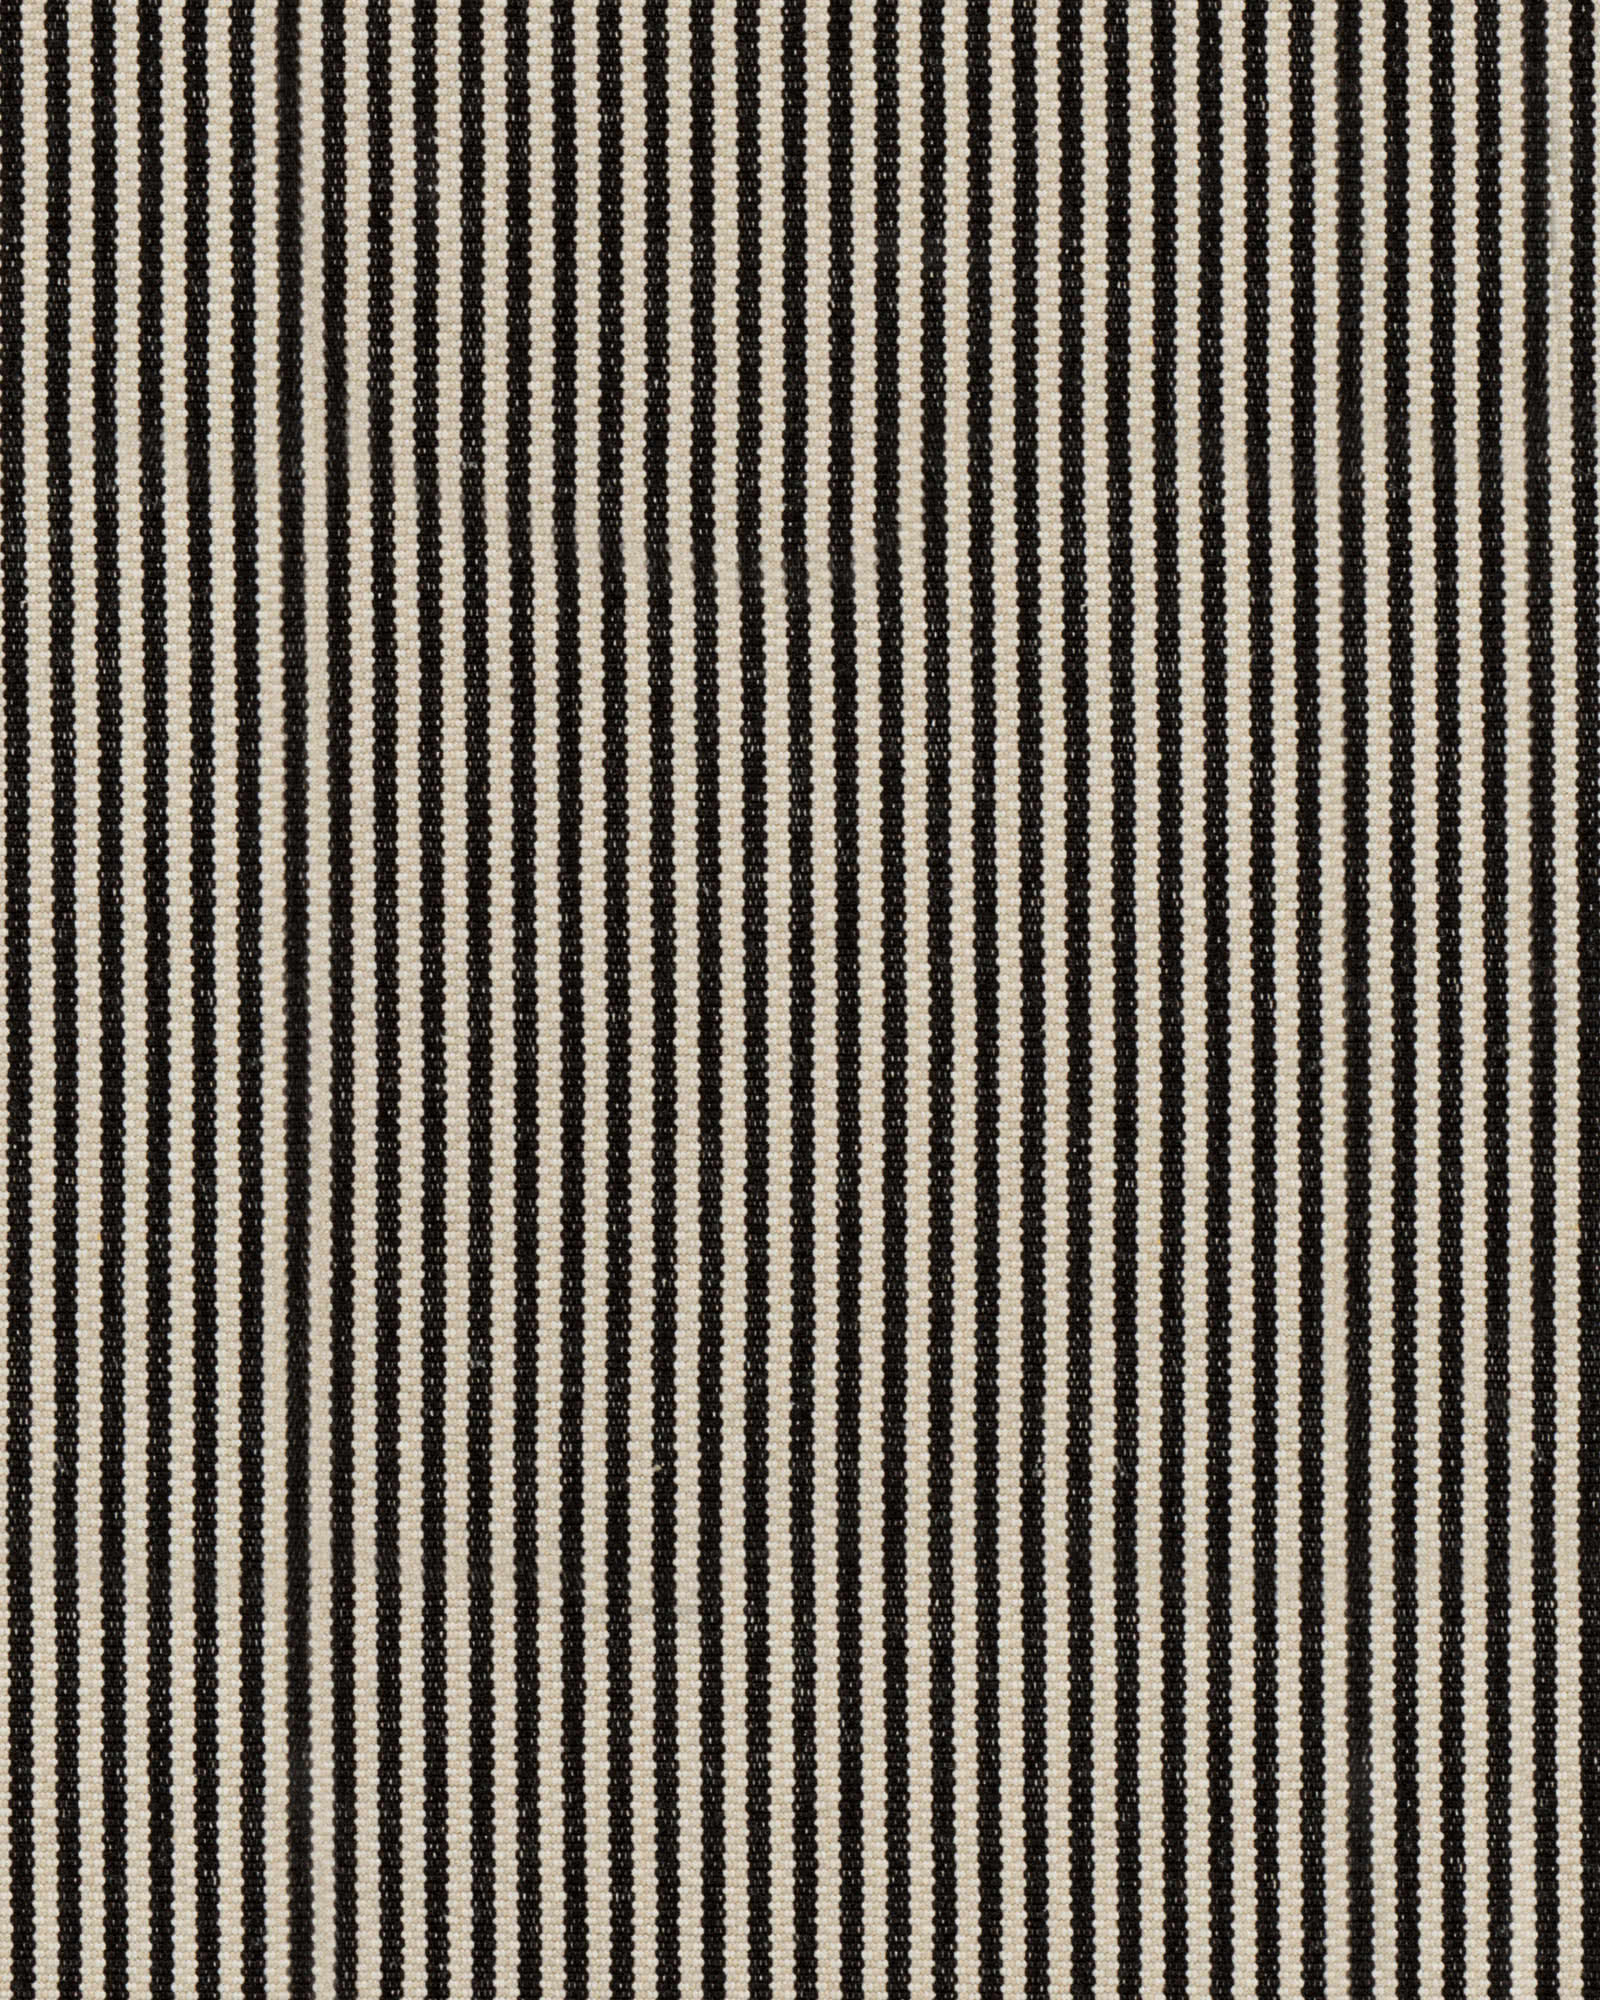 Fabric by the Yard – Pinstripe Cotton Fabric, Black